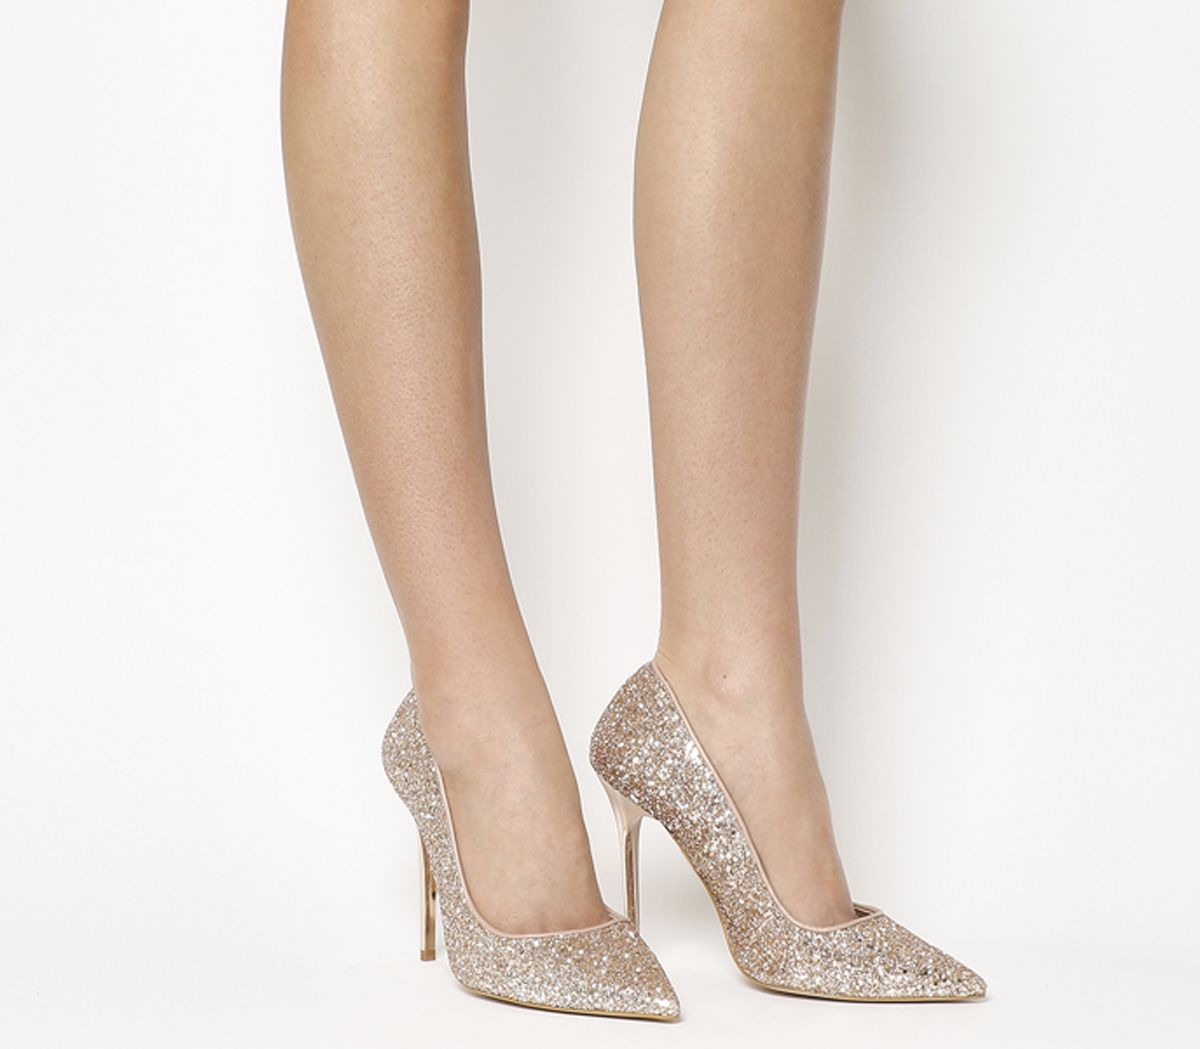 091ef0a705c7 Office On To Point Court Heels Rose Gold Glitter - High Heels